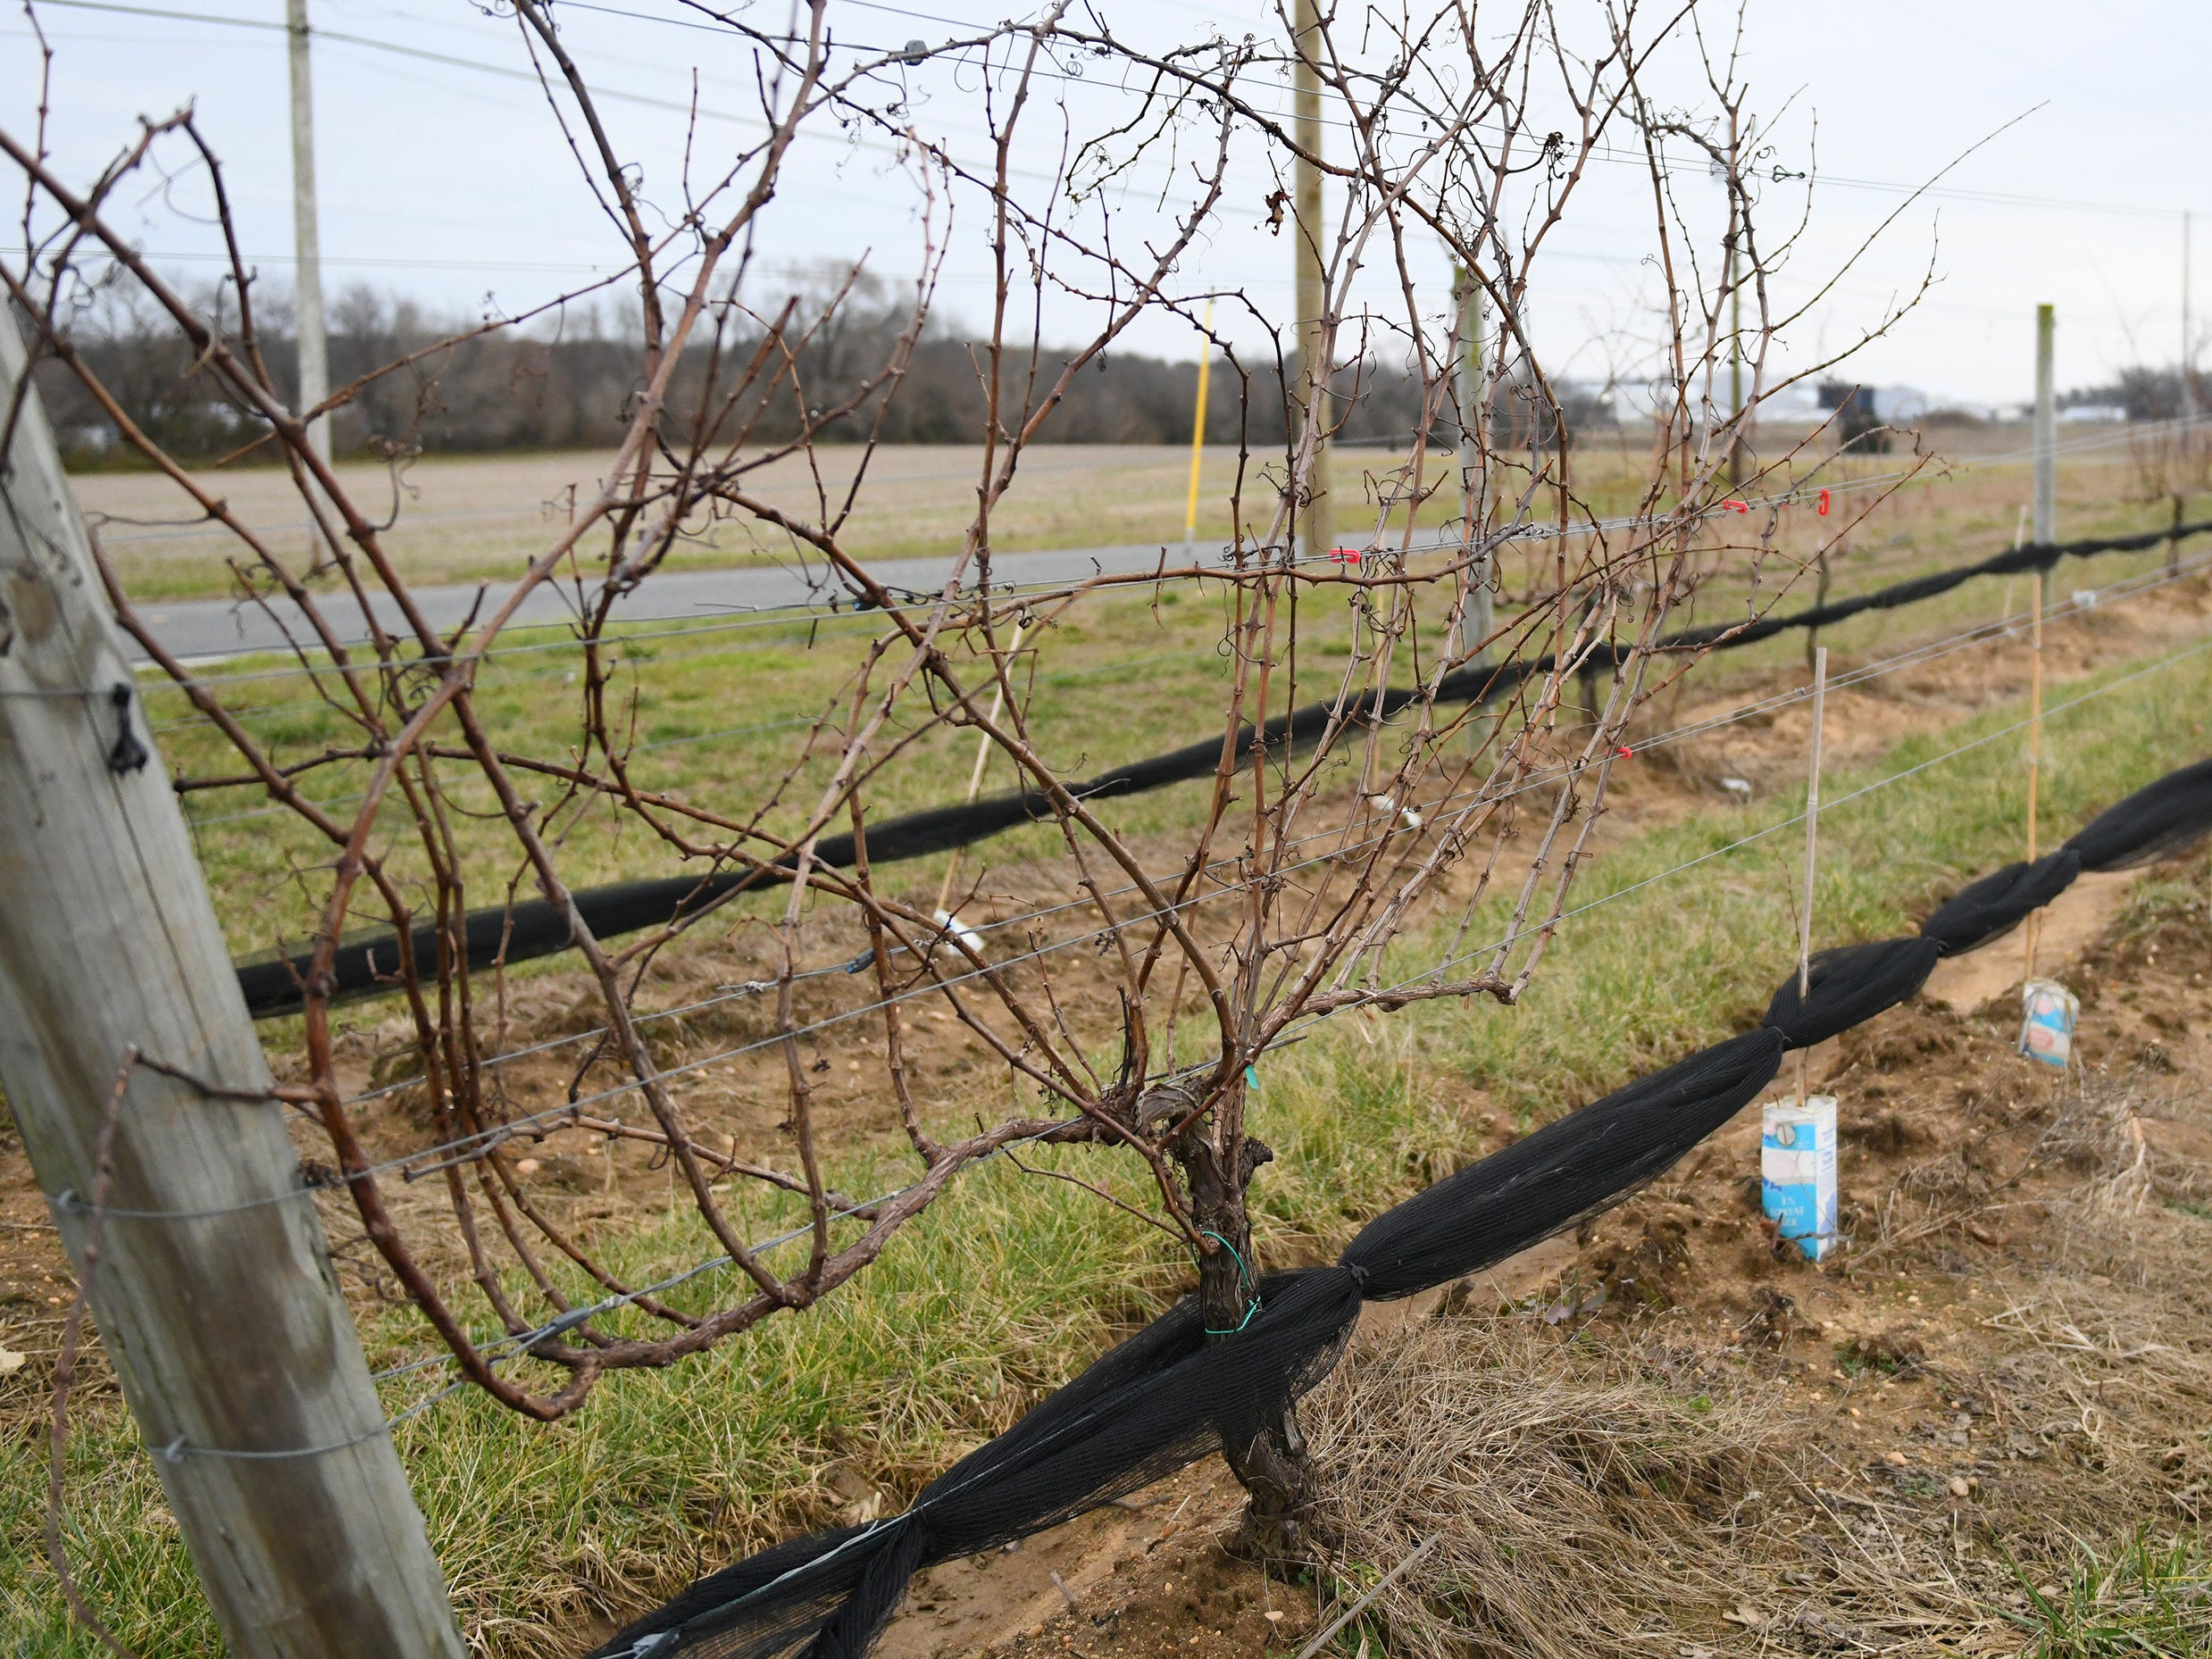 Grape vines are ready to prune at Cedar Rose Vineyards in Rosenhayn, pictured here on Tuesday, Jan. 8, 2019.